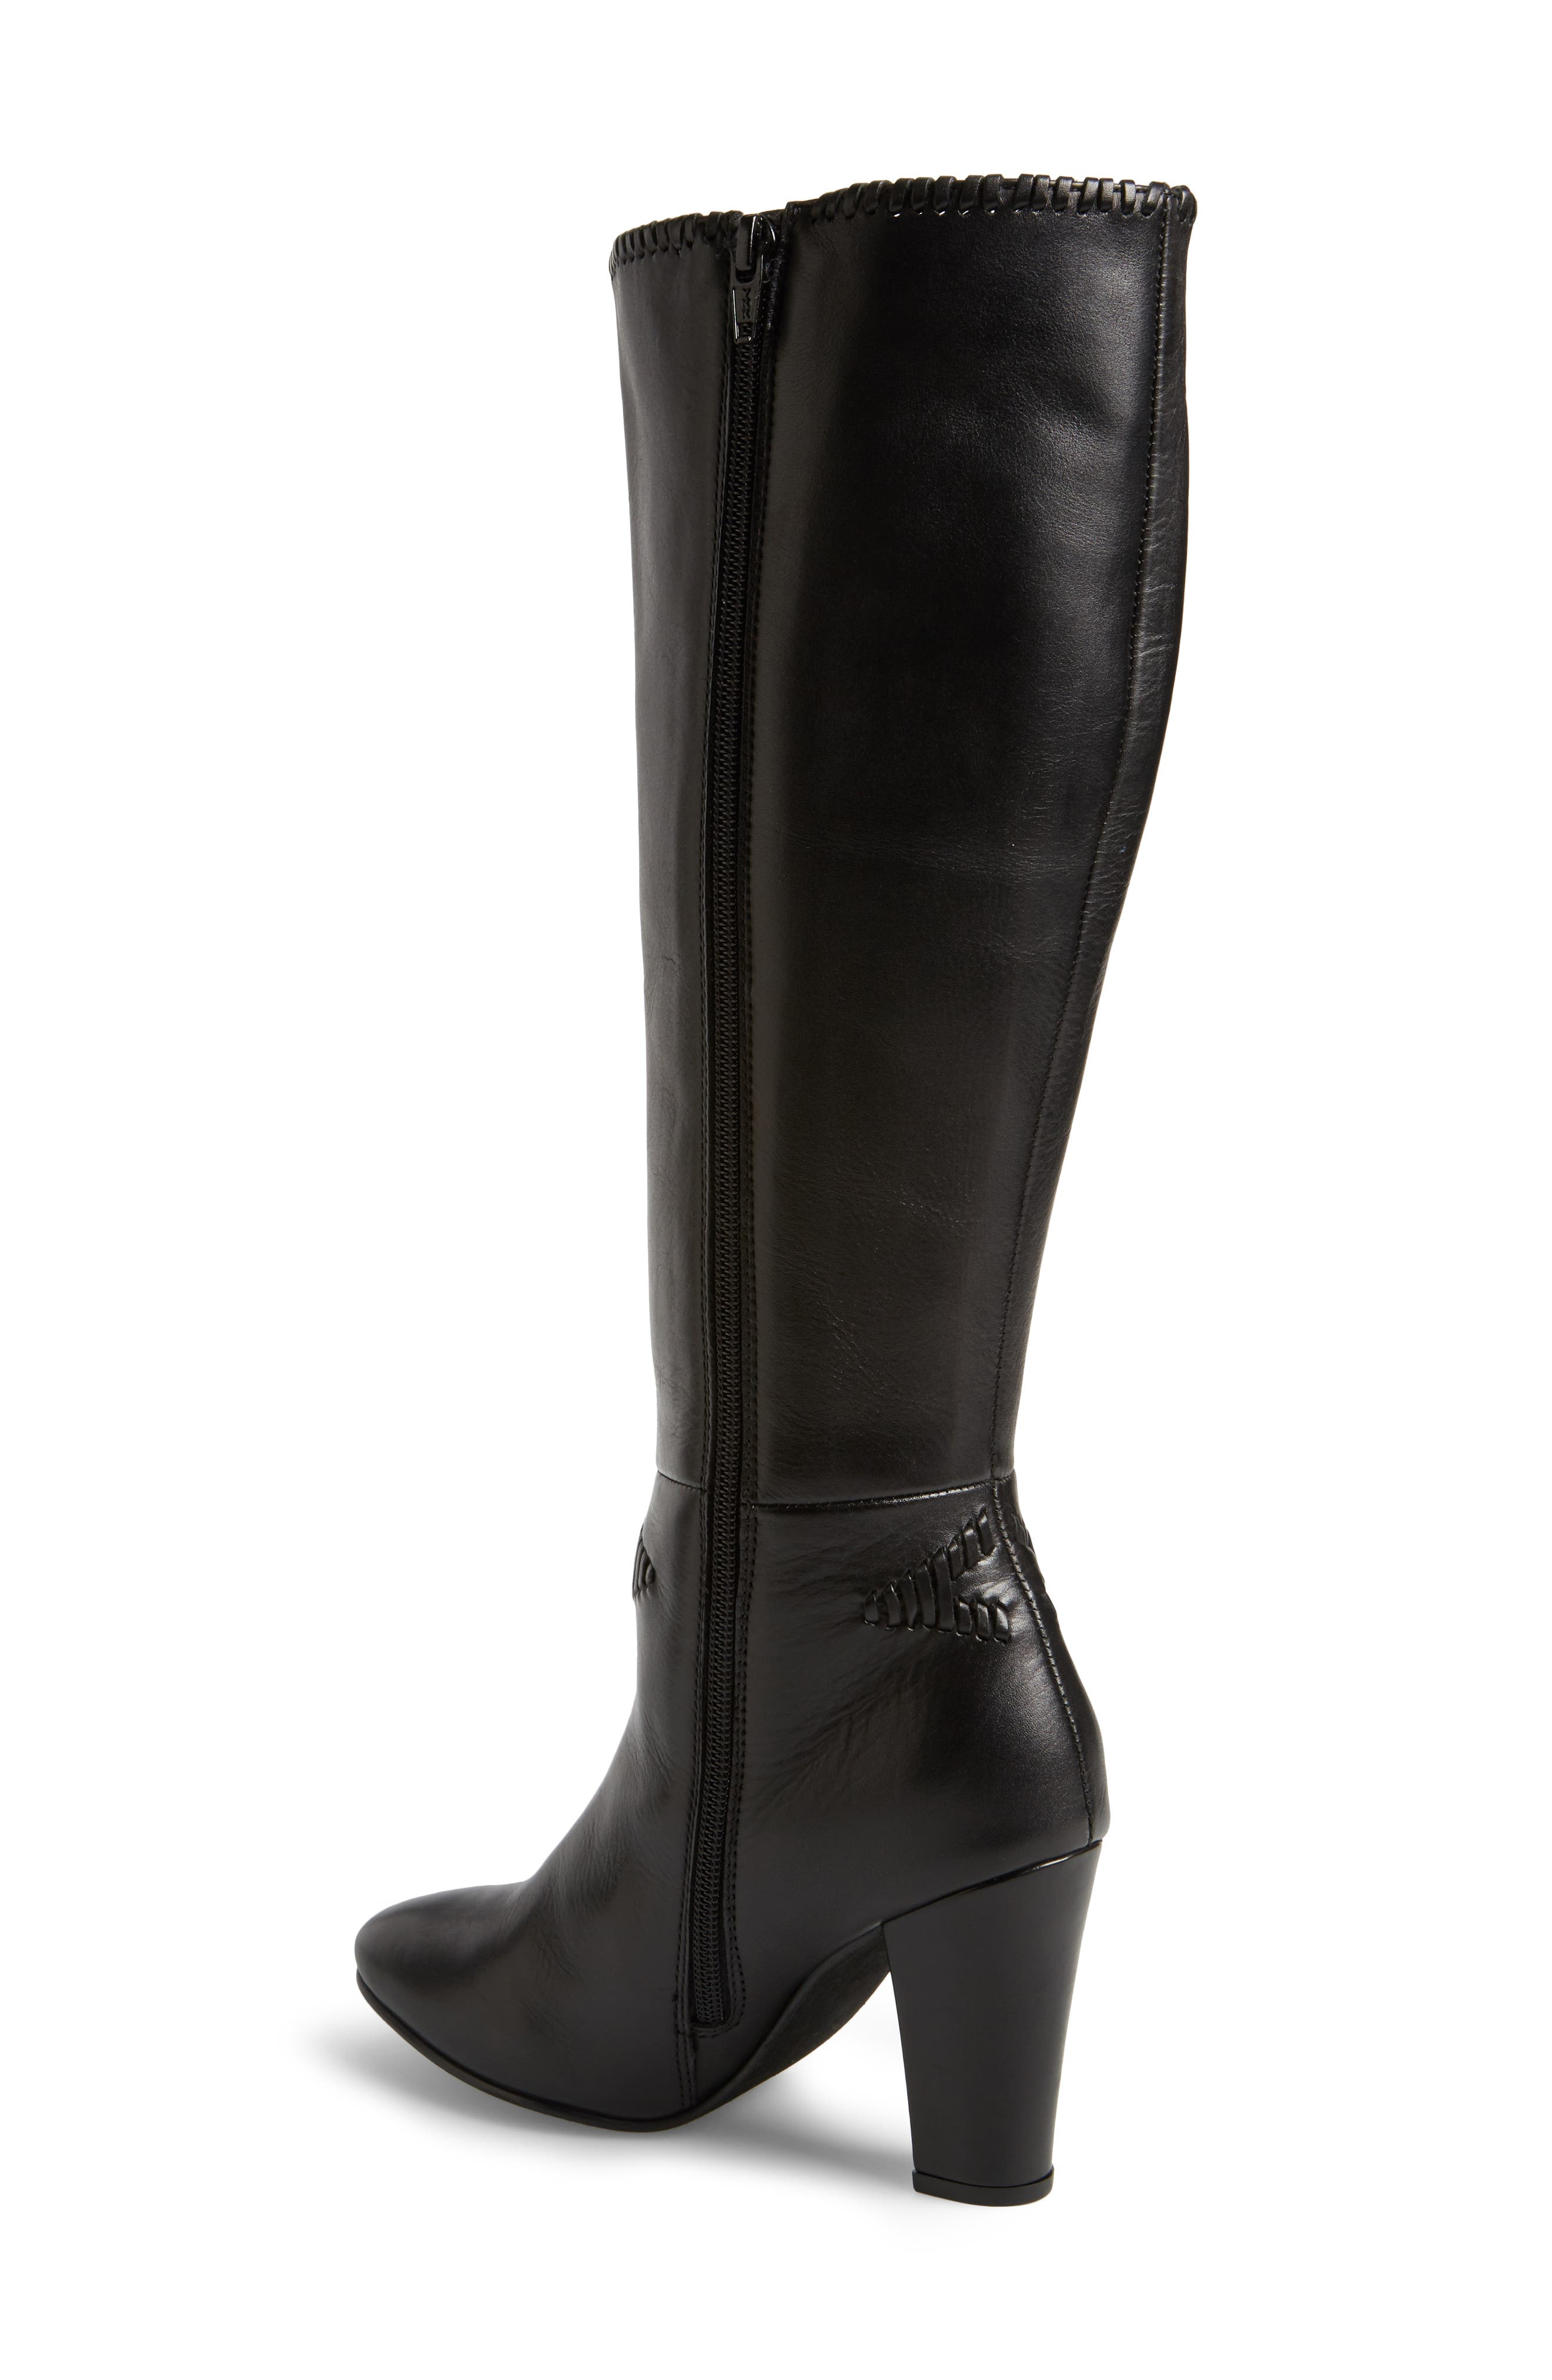 Reserved Knee High Boot,                             Alternate thumbnail 2, color,                             001